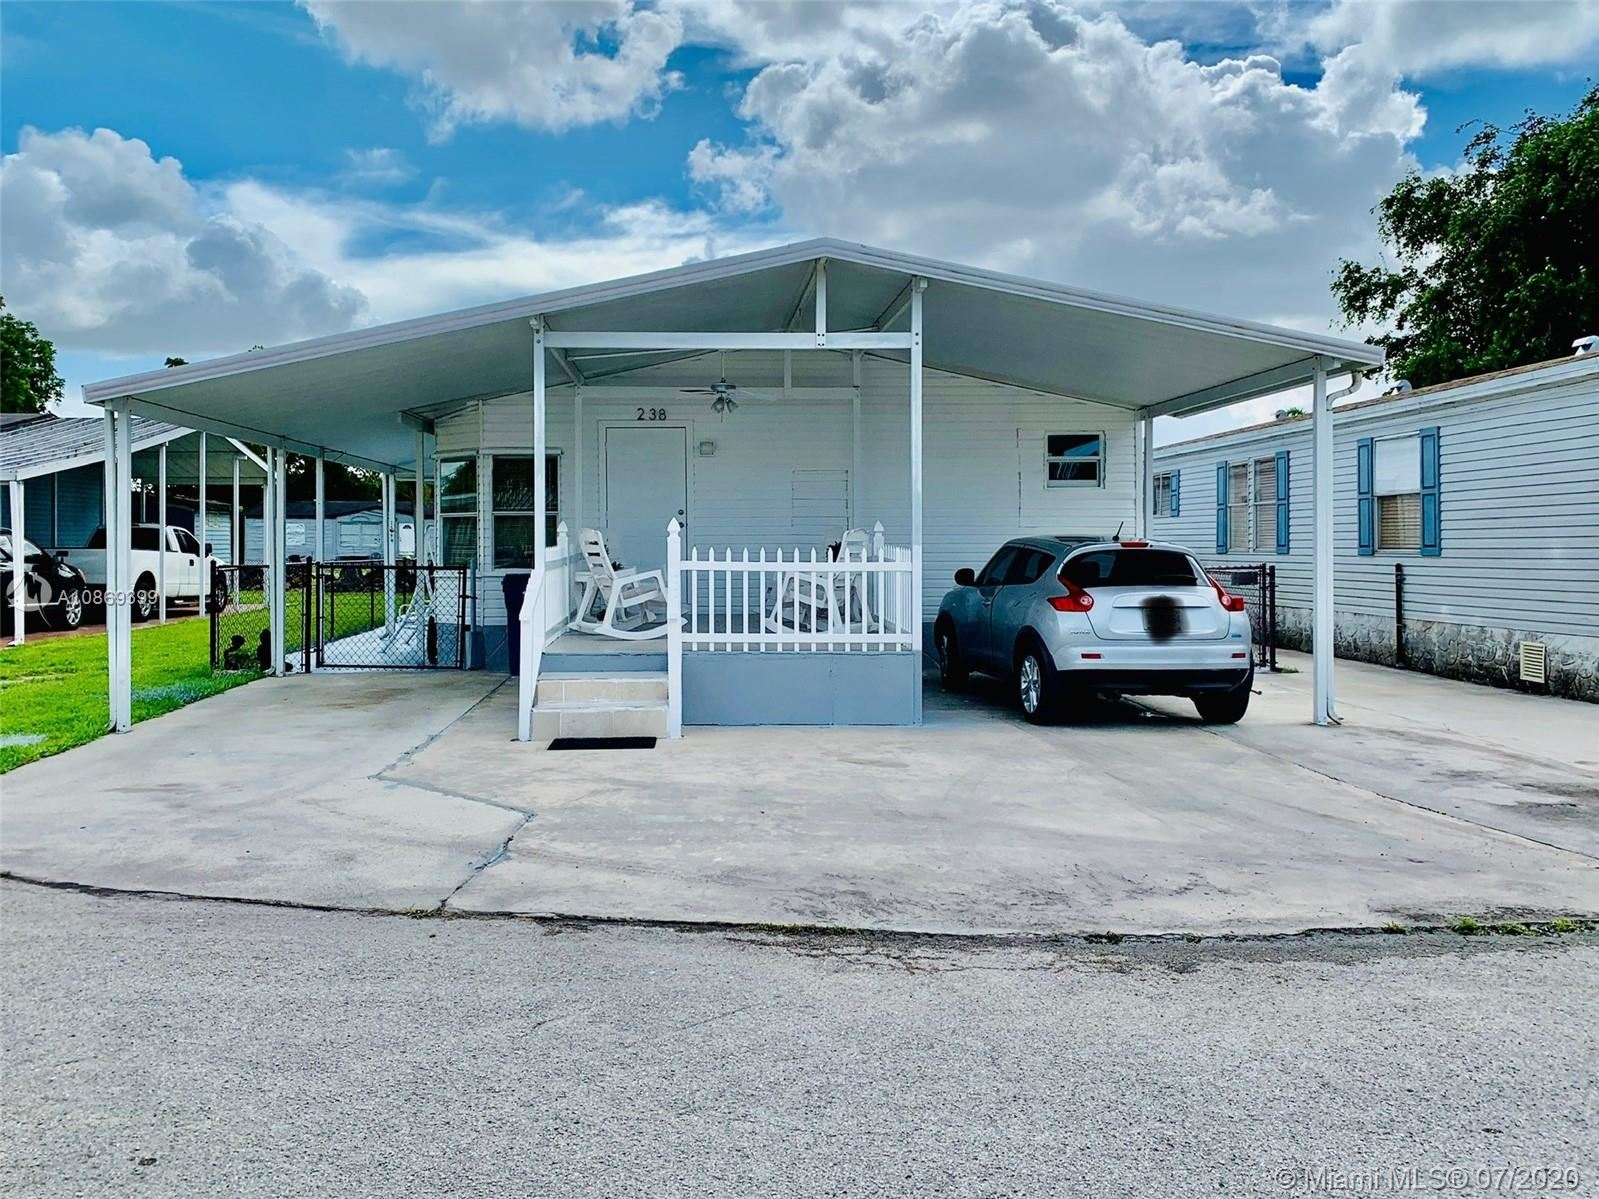 19800 SW 180th Ave, Miami, FL 33187 - #: A10869399